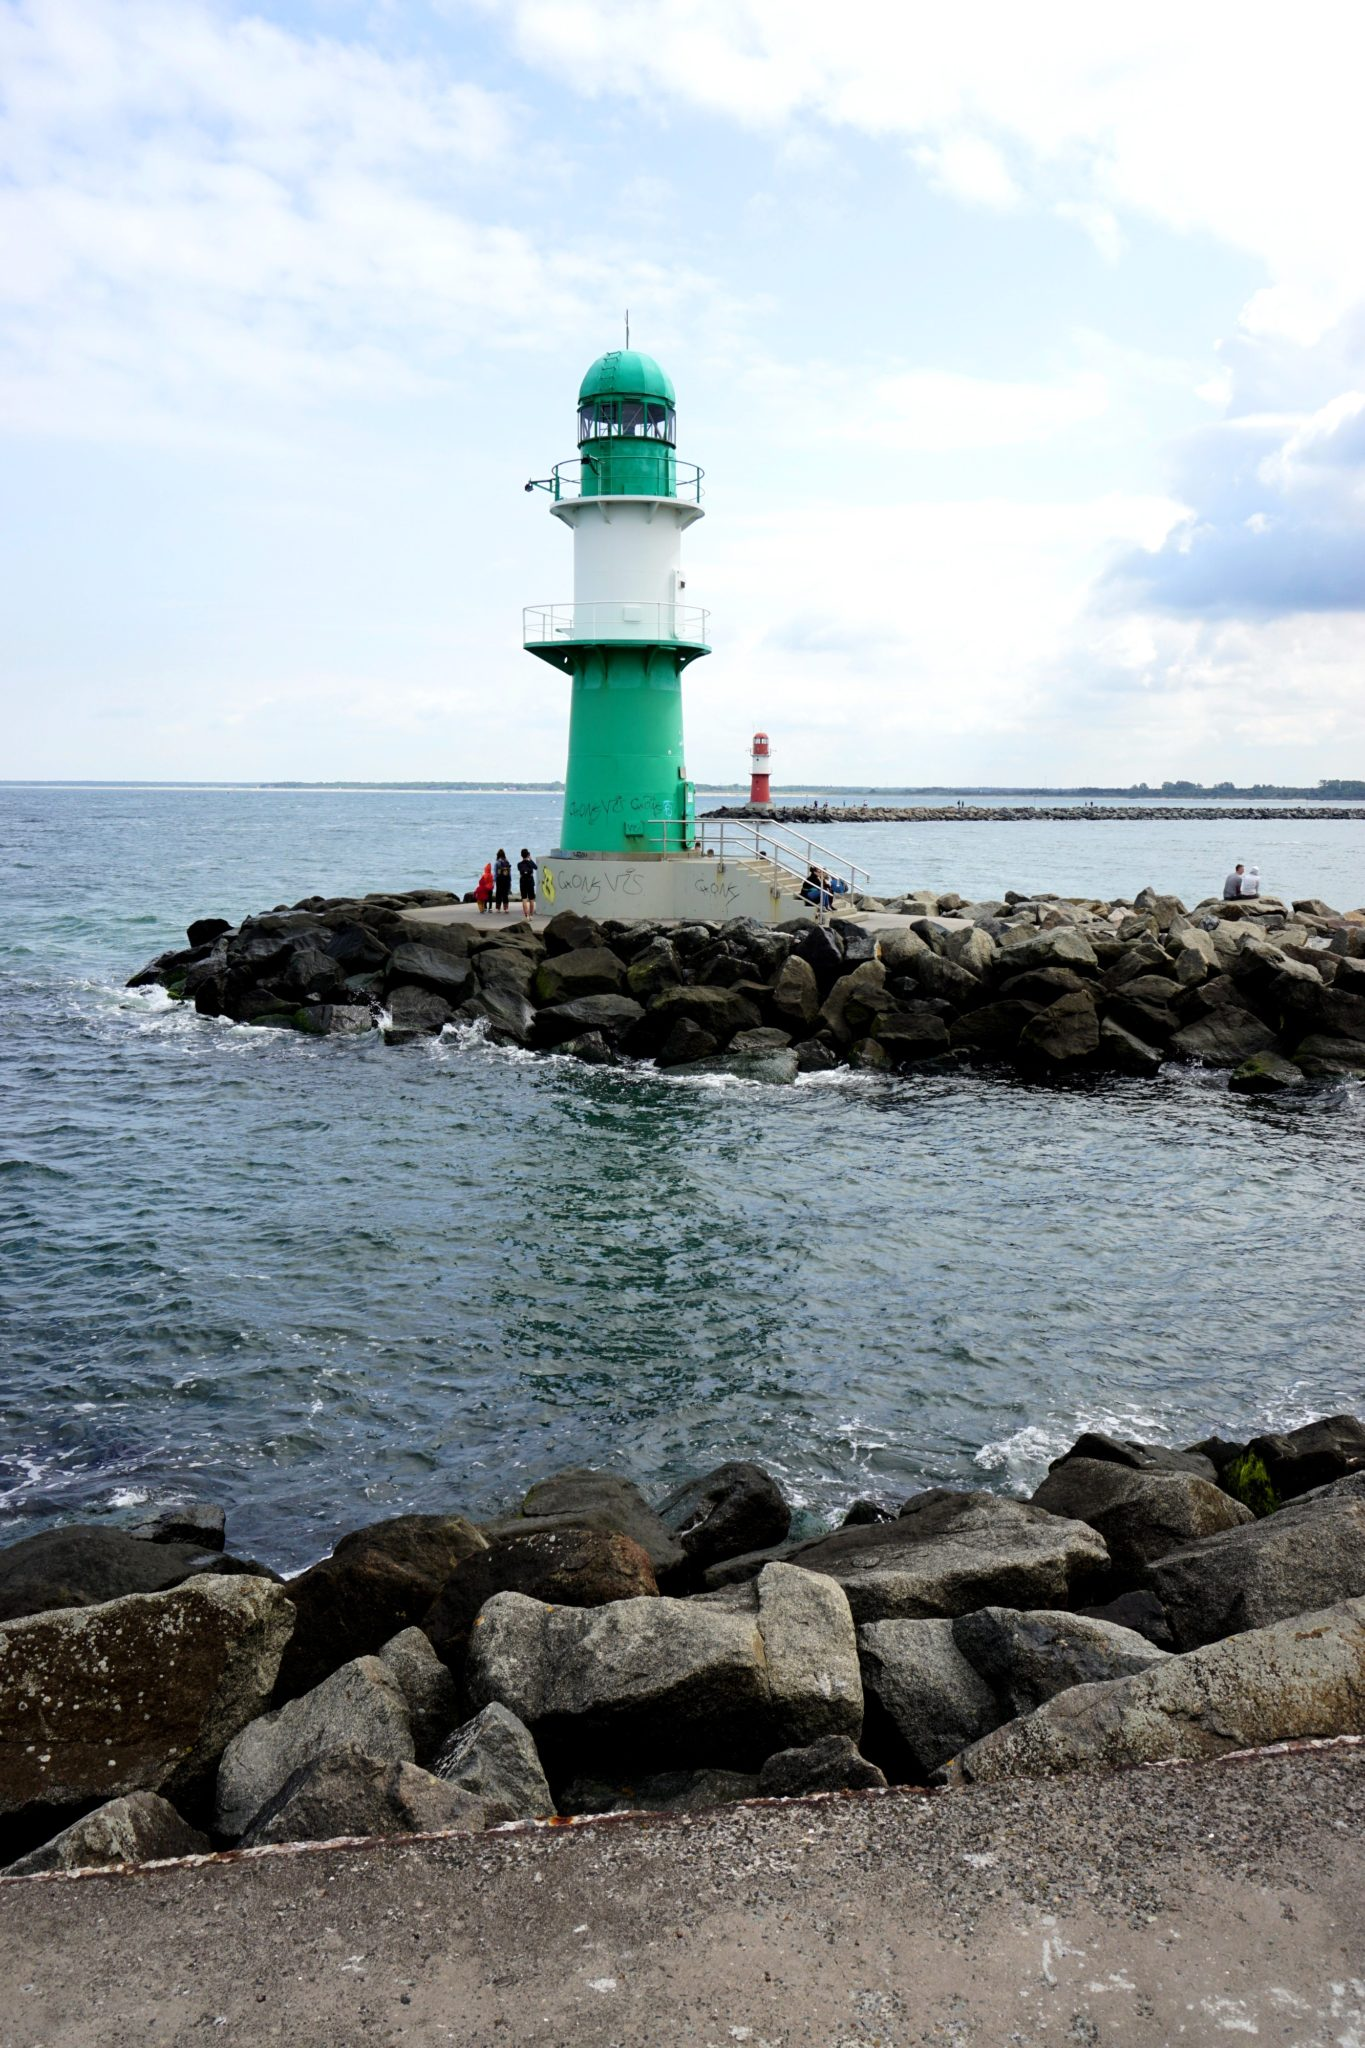 The west pier in Warnemünde runs 500 meters into the Baltic Sea.